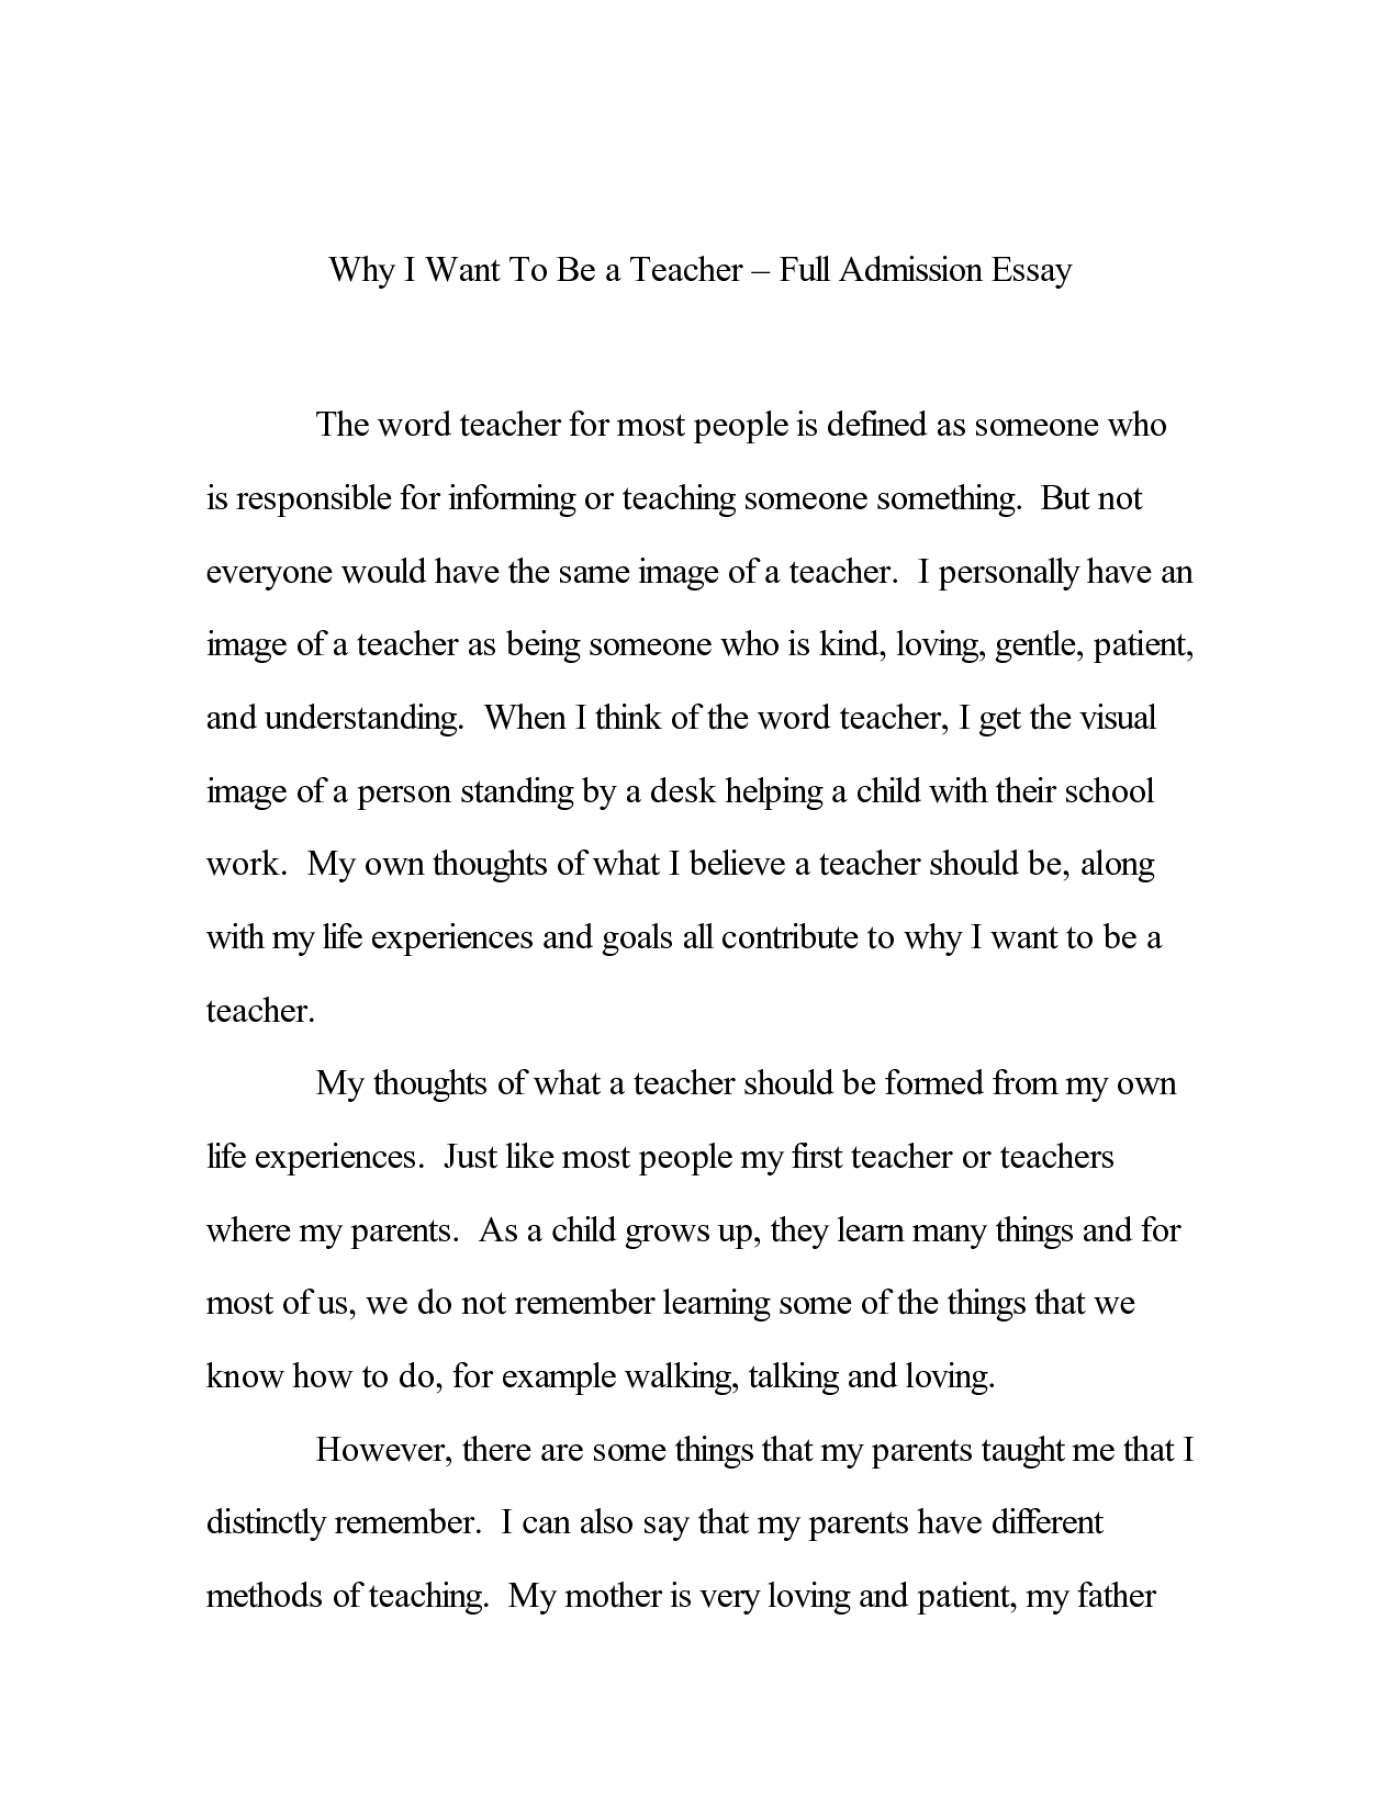 004 Writing College Application Essay Rare A Topics To Write On Tips For About Yourself 1400